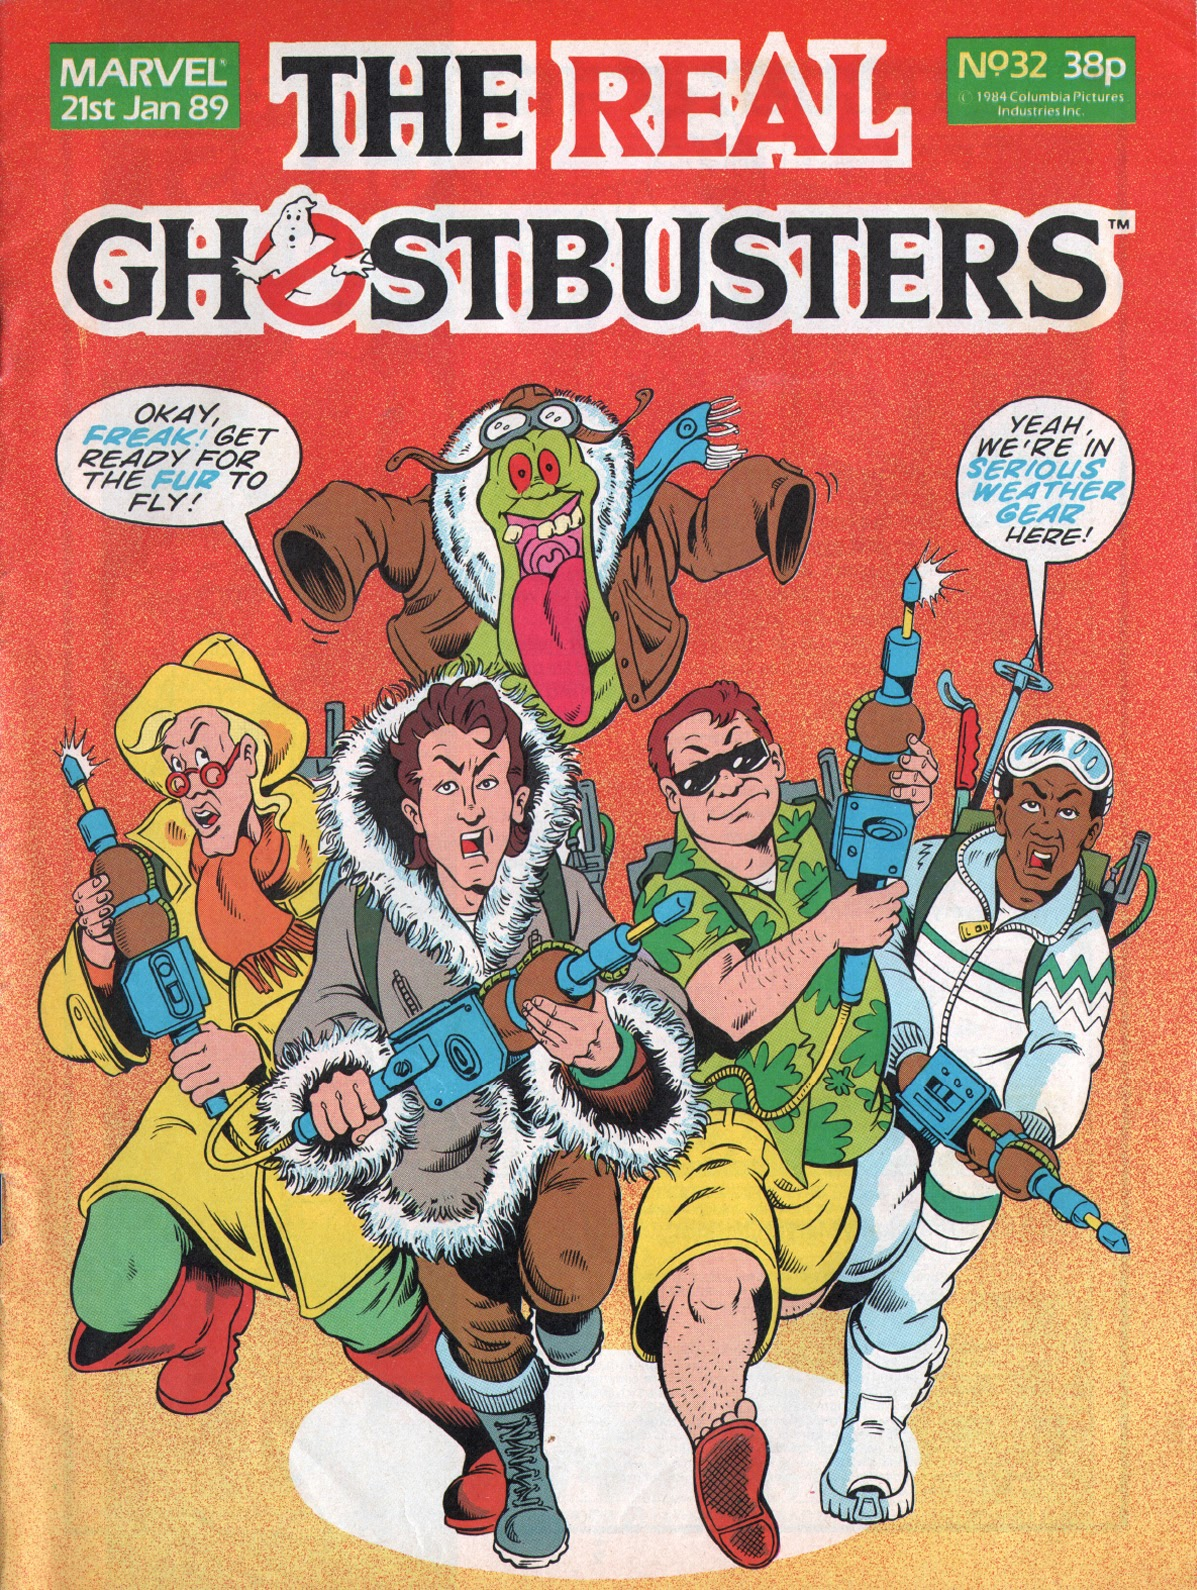 The Real Ghostbusters 32 Page 1